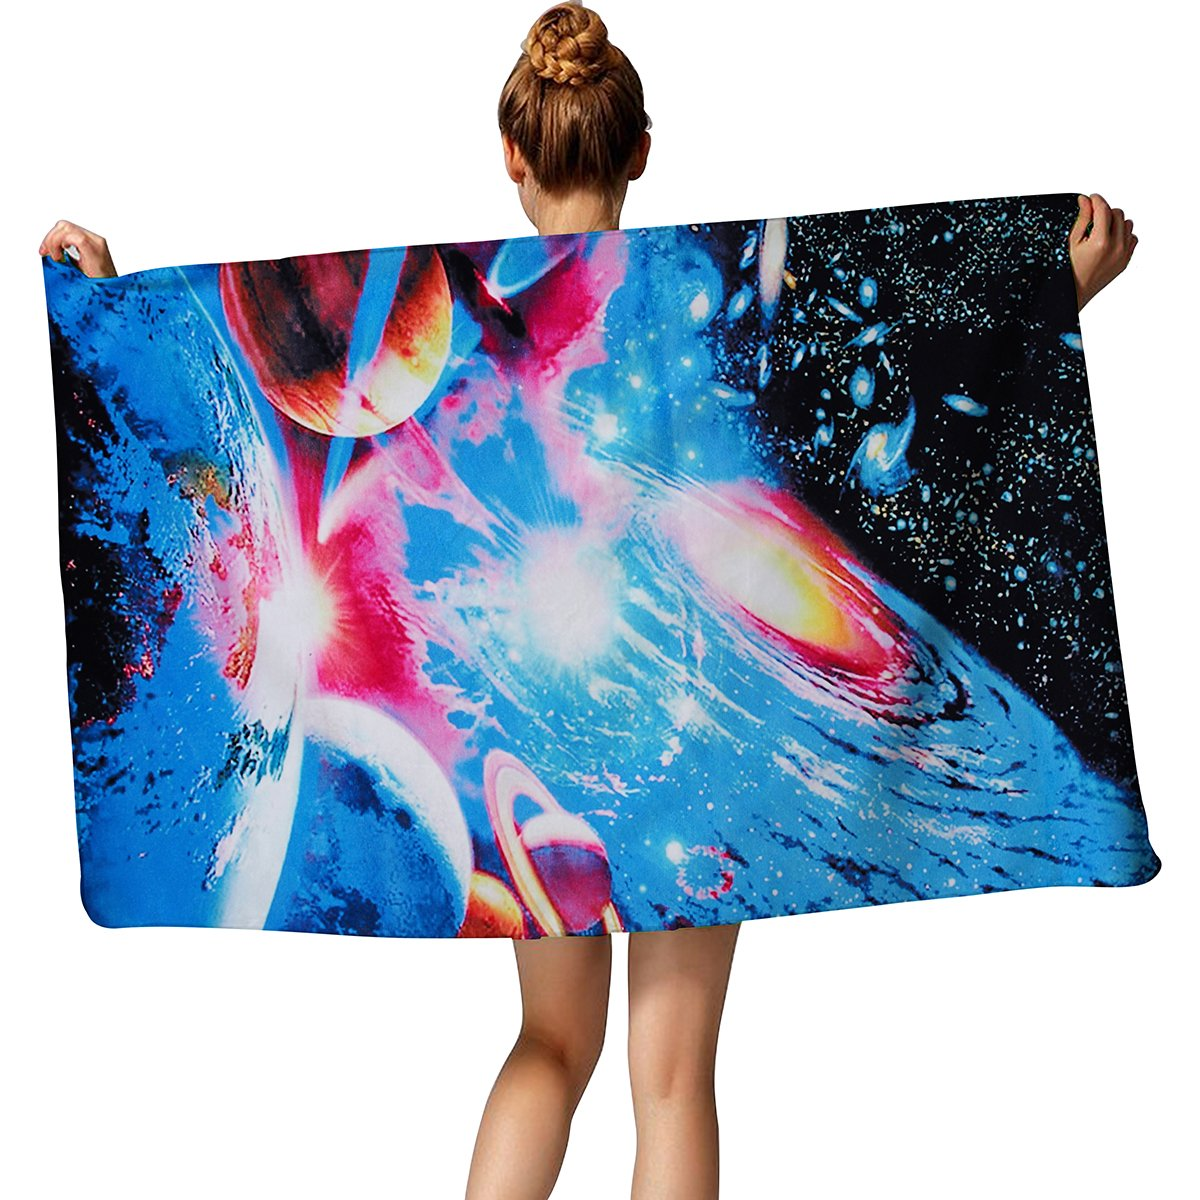 TUONROAD Packable Travel Towel Unique Cool Galaxy Space Pattern Jumbo Beach Towel Black White Blue Red Yellow Colorful Microfiber Bath Towels 30\